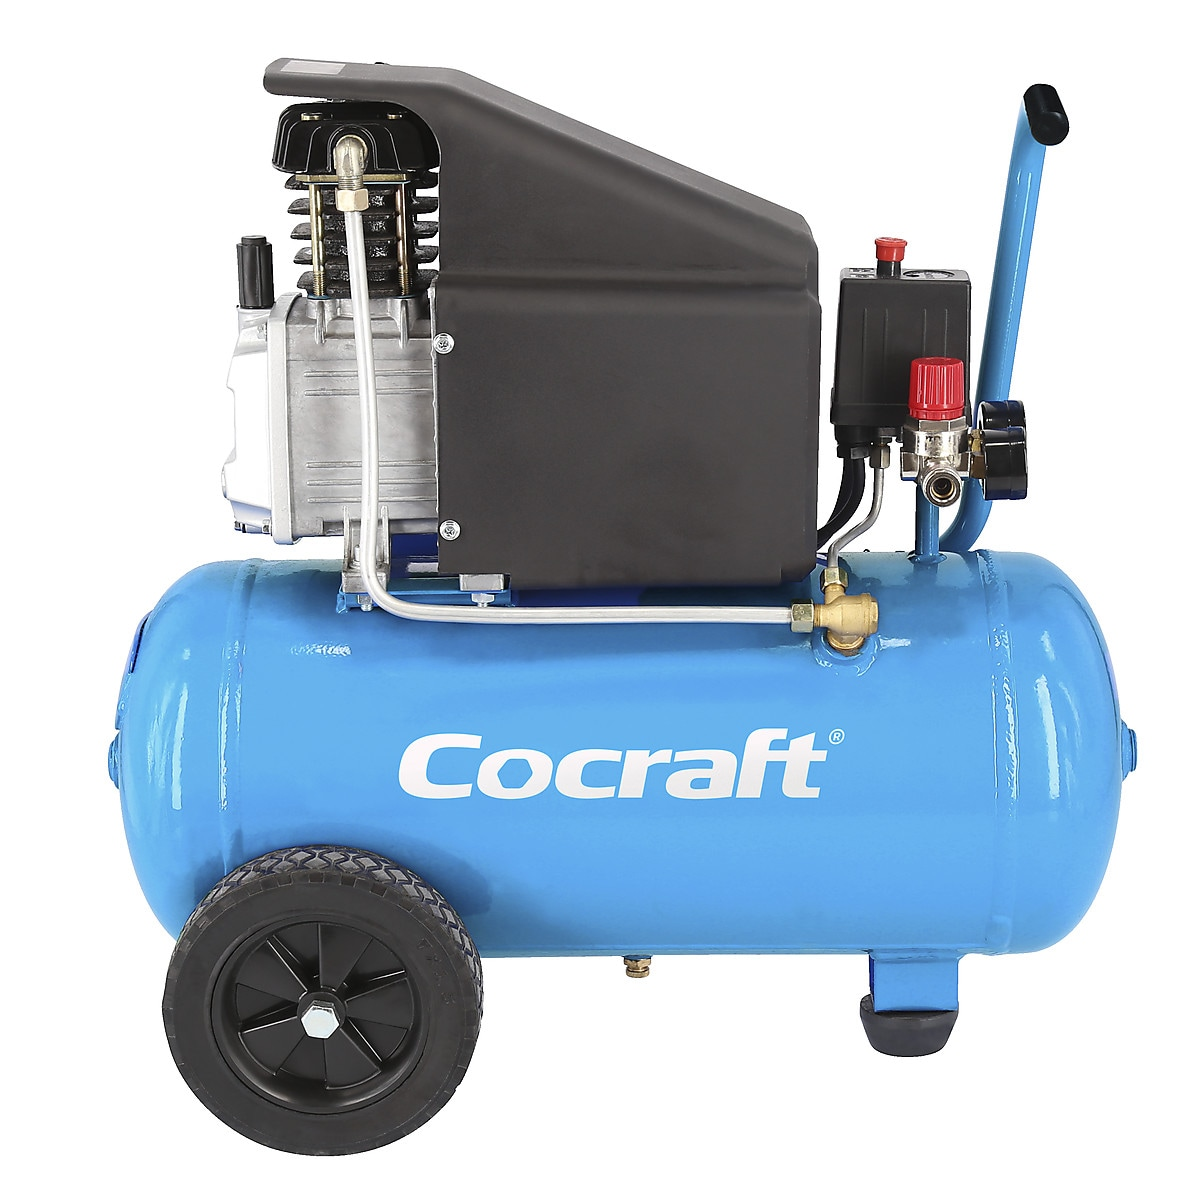 Cocraft HC 224 Air Compressor